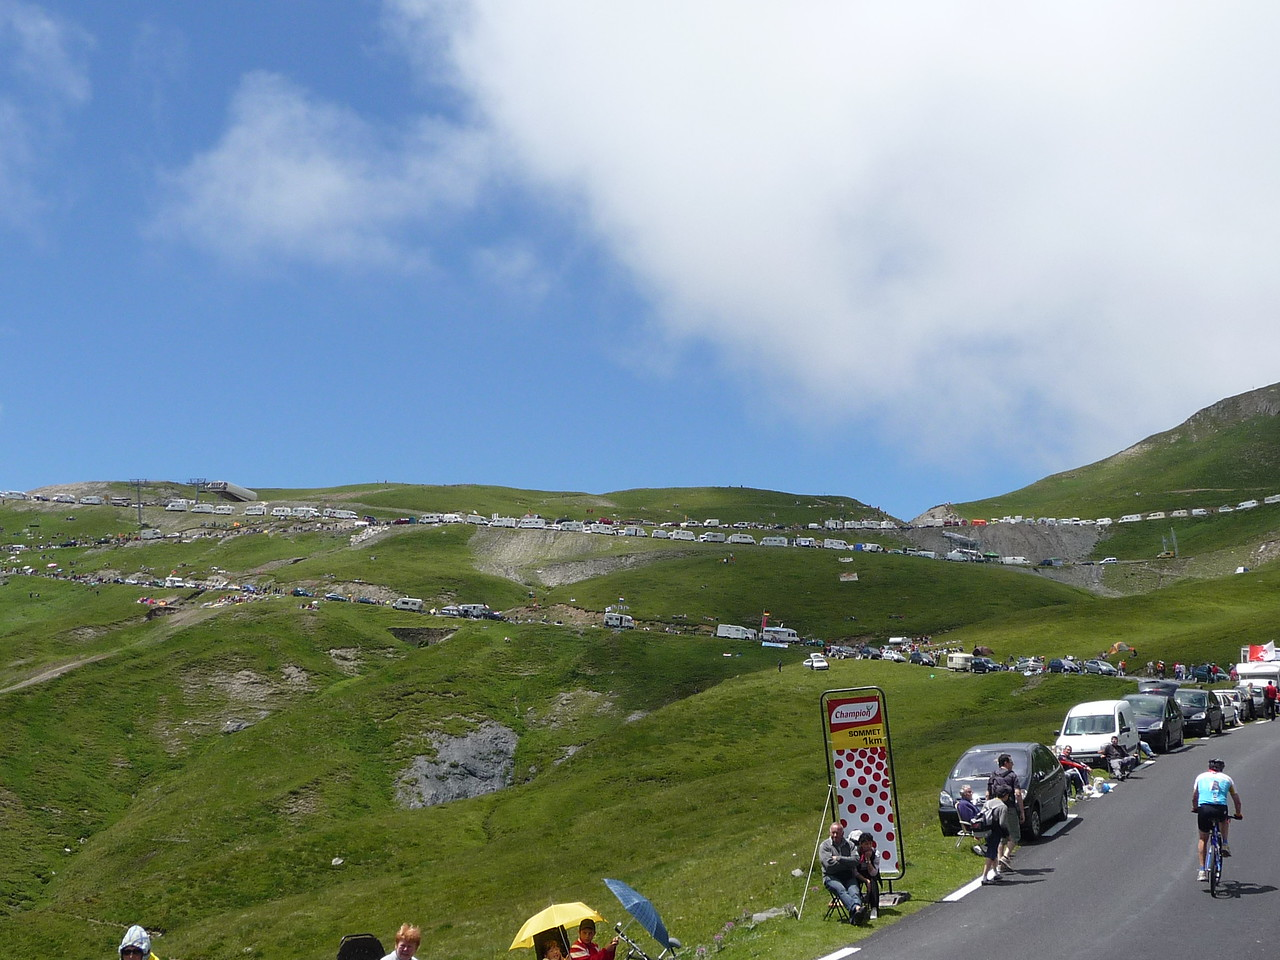 This is the longest (and loudest) 1km ever.